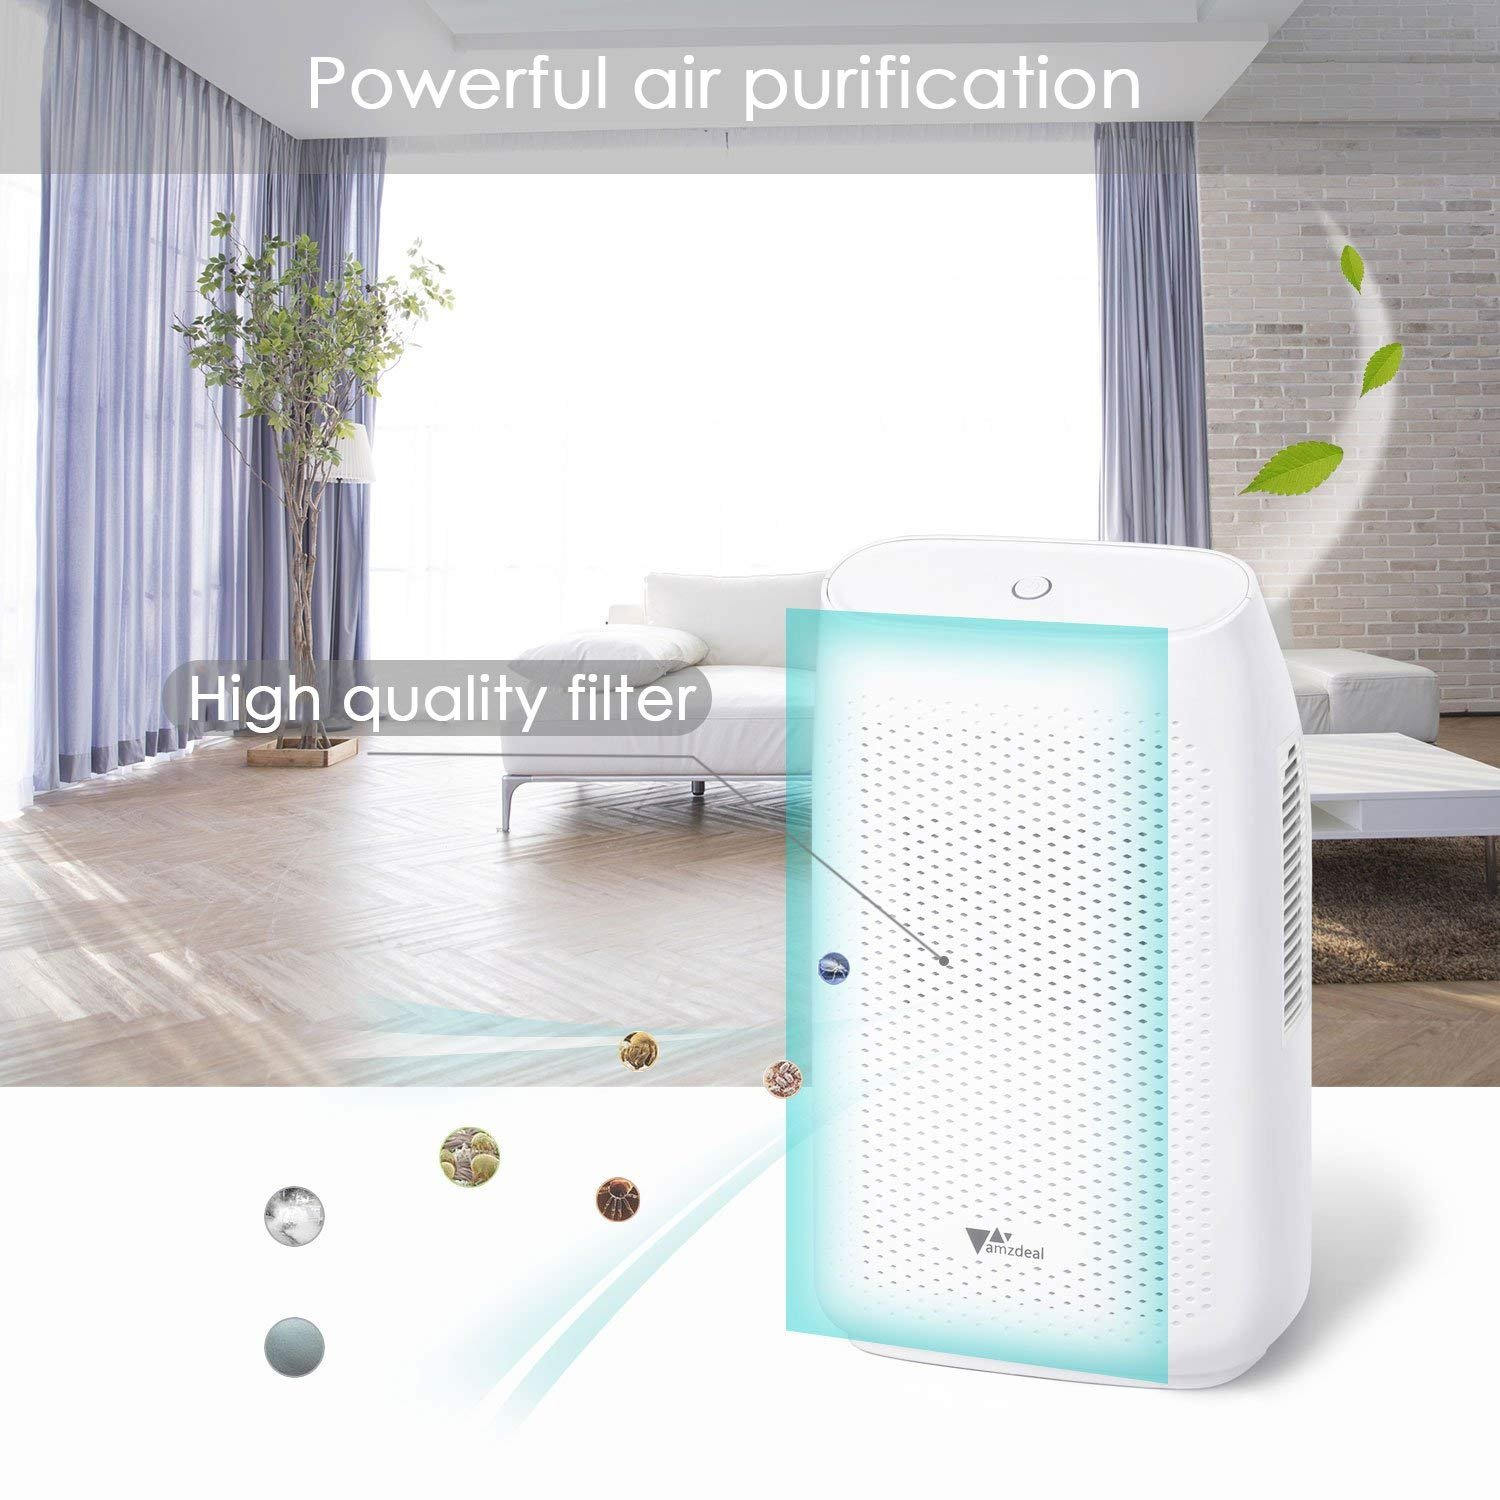 amzdeal Dehumidifier for Home Small Dehumidifier Mini Electrical Quiet 700ml (24fl.oz) Capacity Suitable for Bedroom Basement Bathroom(1200 Cubic Feet or 215 sq ft) Auto Off to Remove Damp, Moisture by amzdeal (Image #2)